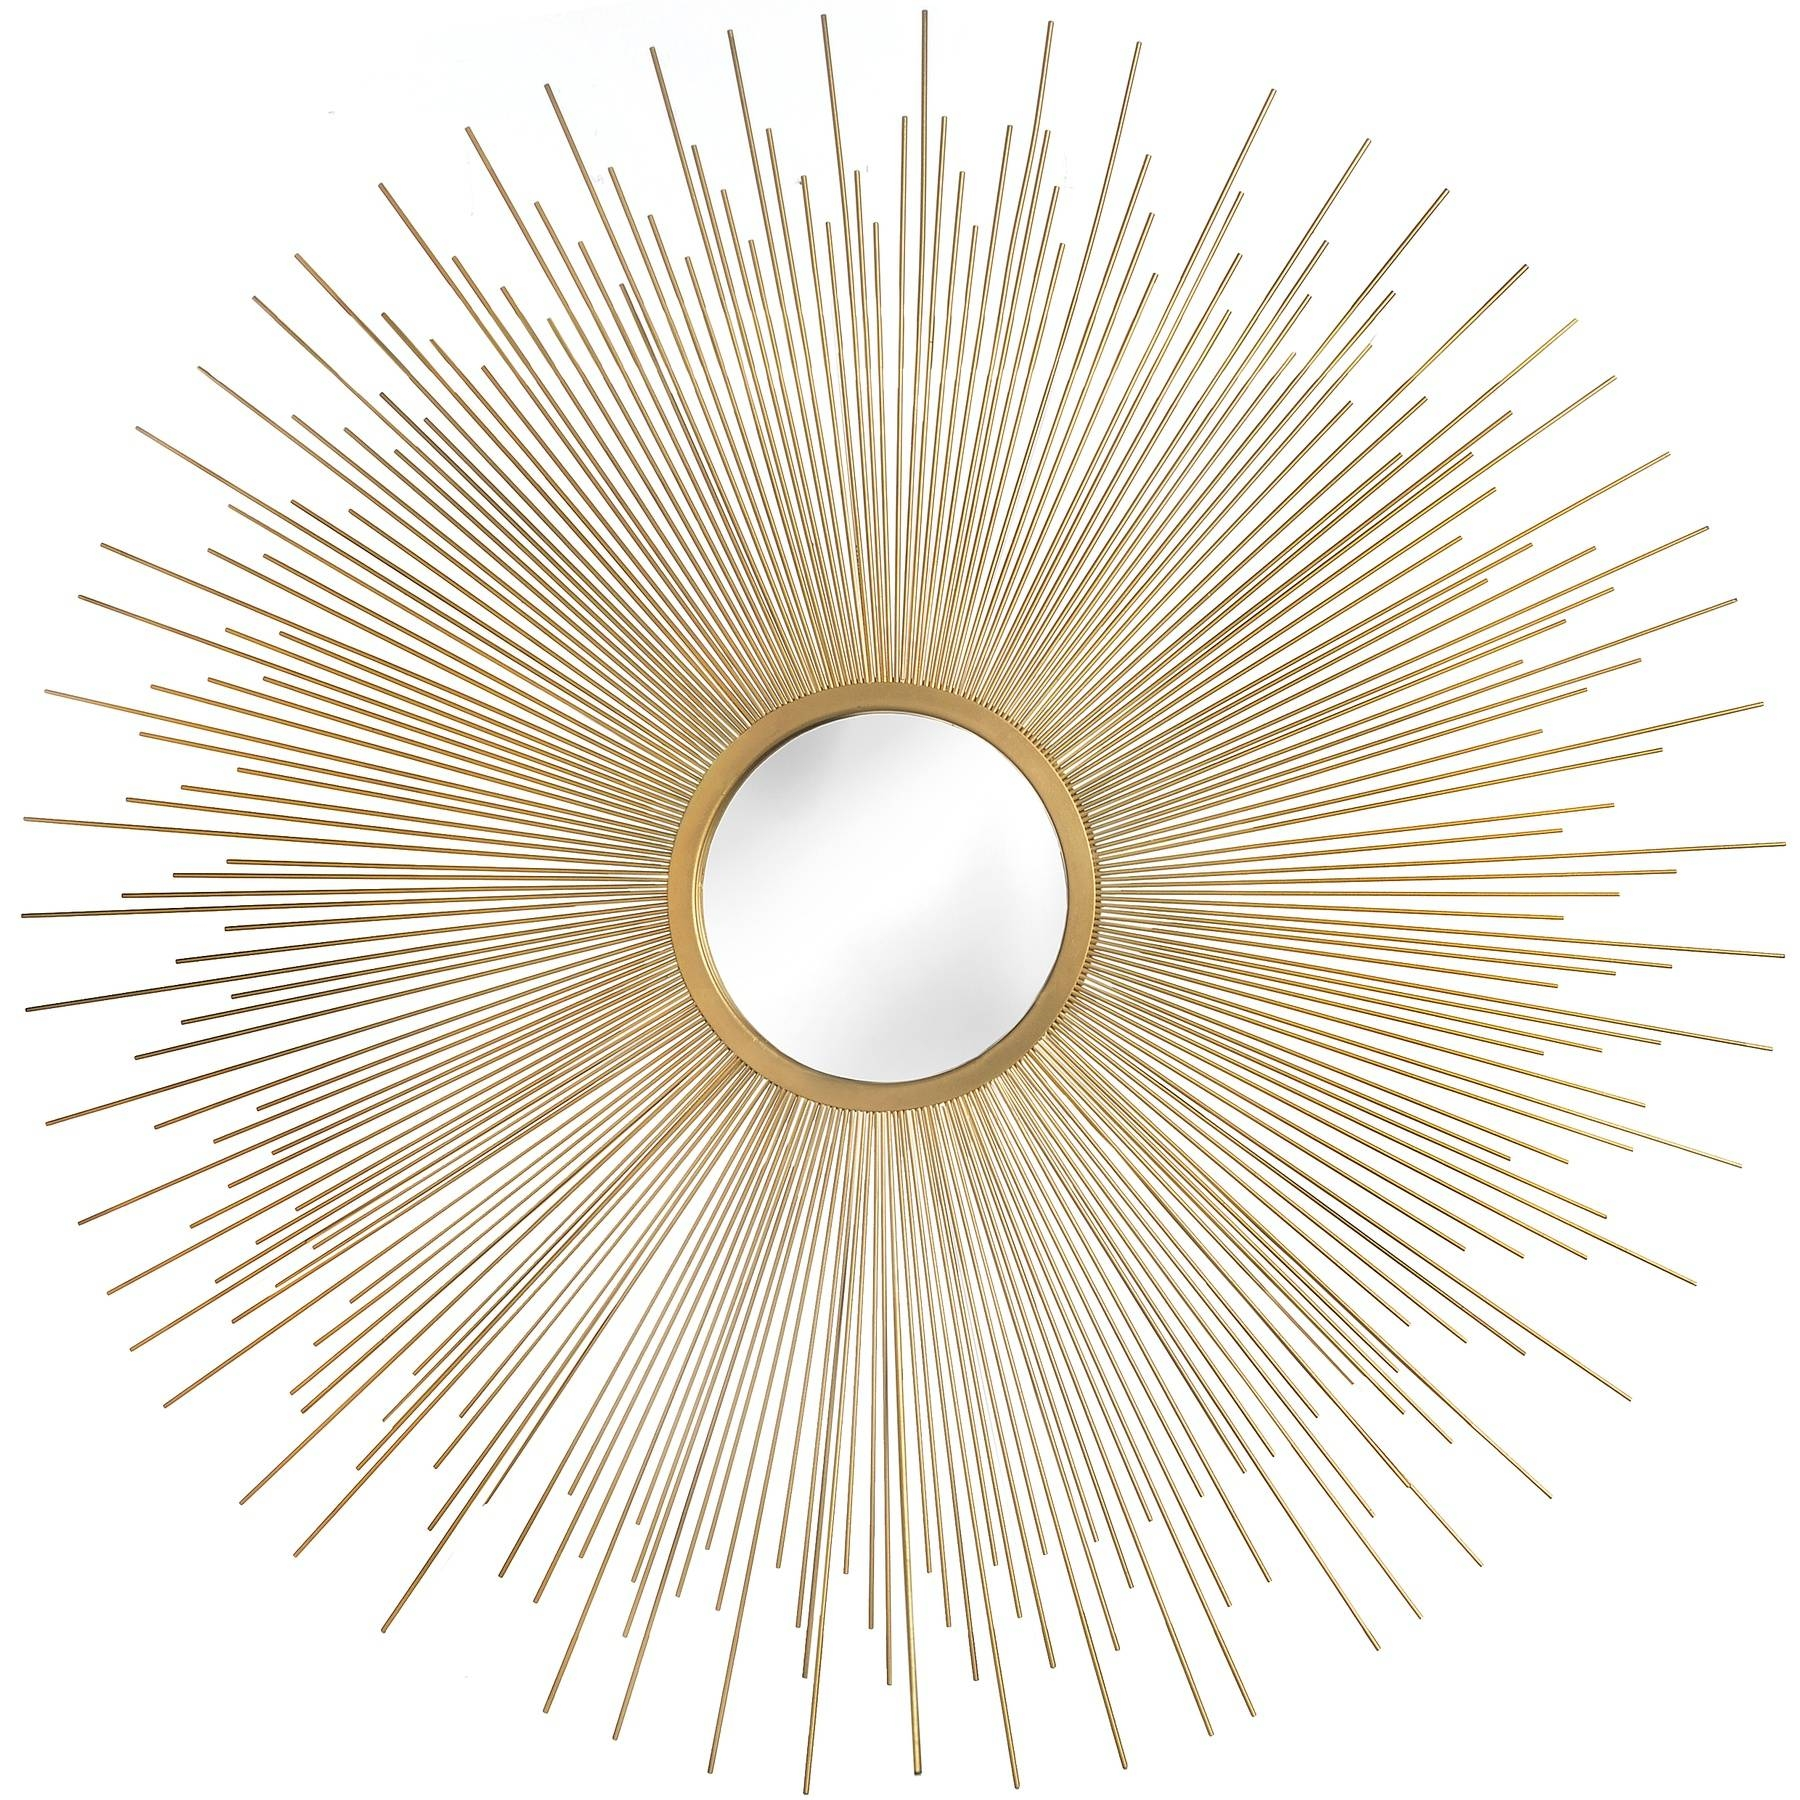 Rising Sun Gold Metal Wall Art Mirror | From Baytree Interiors With Current Gold Metal Wall Art (View 14 of 20)